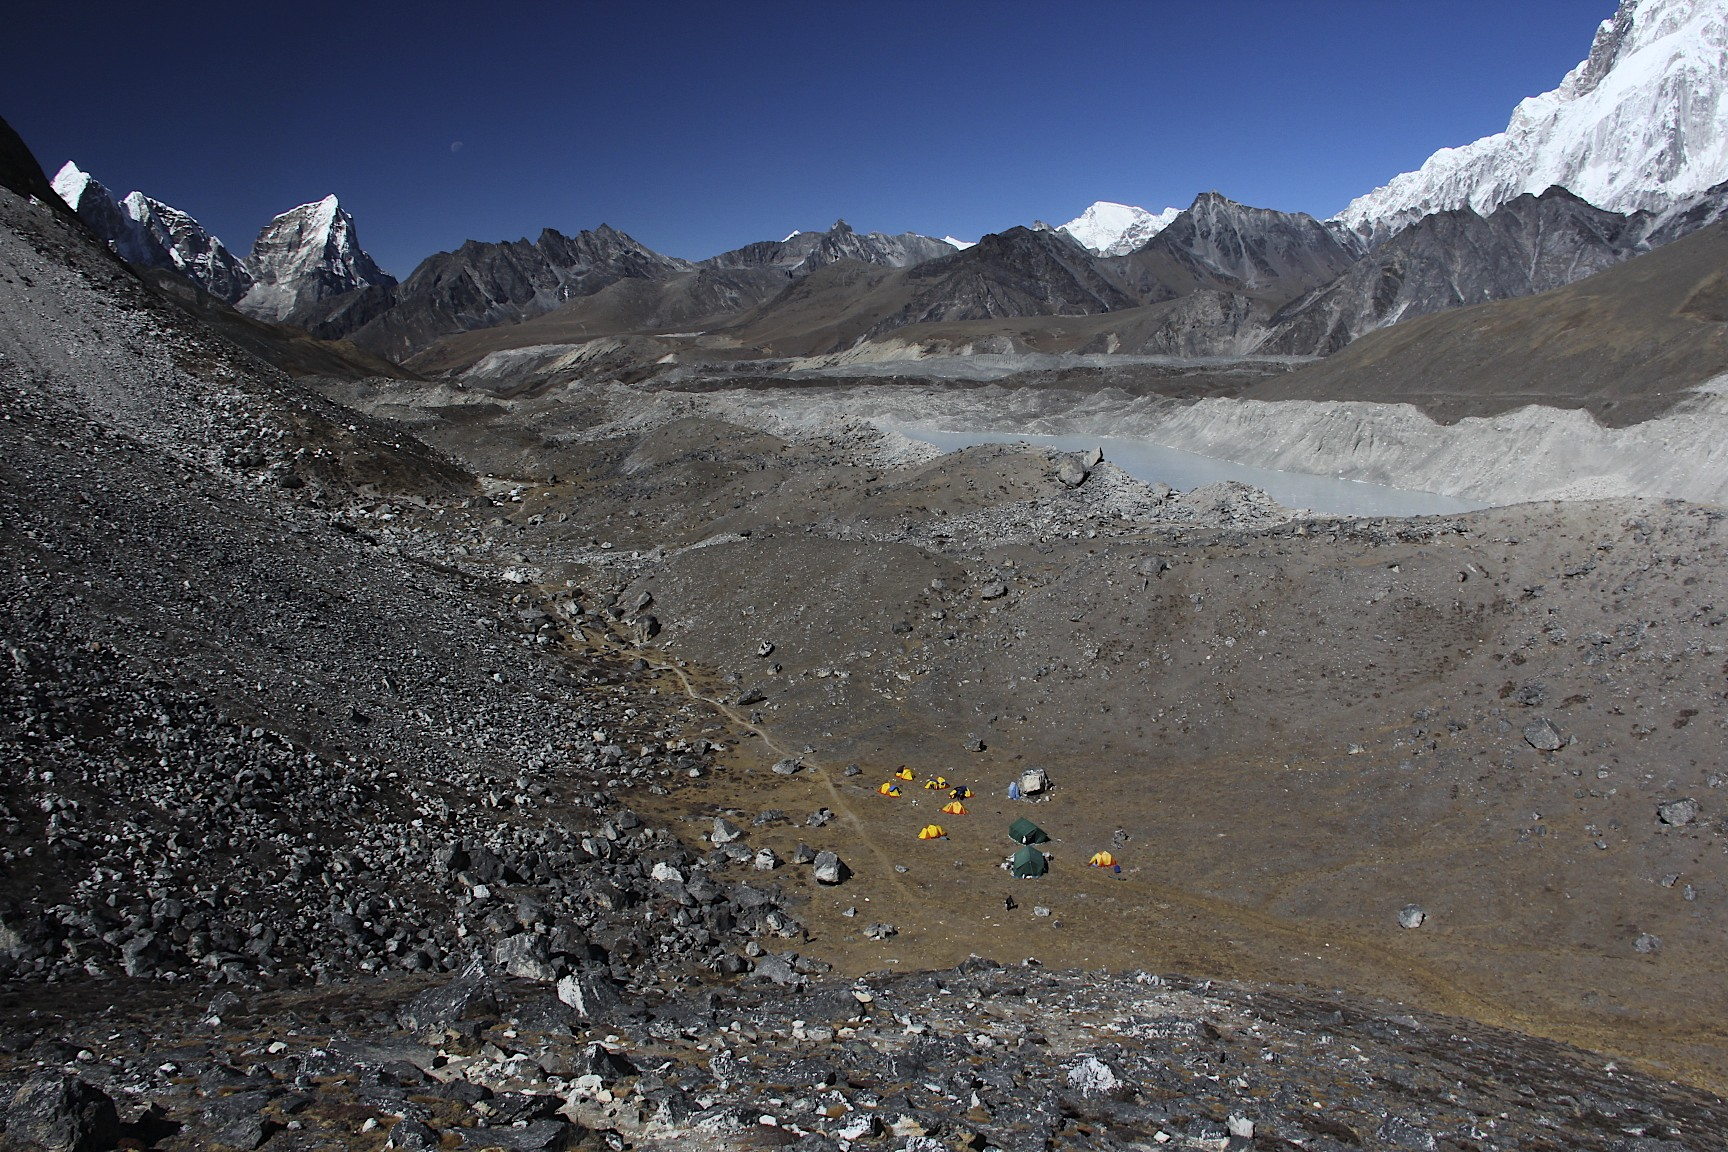 Mt. Cholatese, Mt. Cho Oyu (in the distance right of centre) and Lhotse massif on the right.